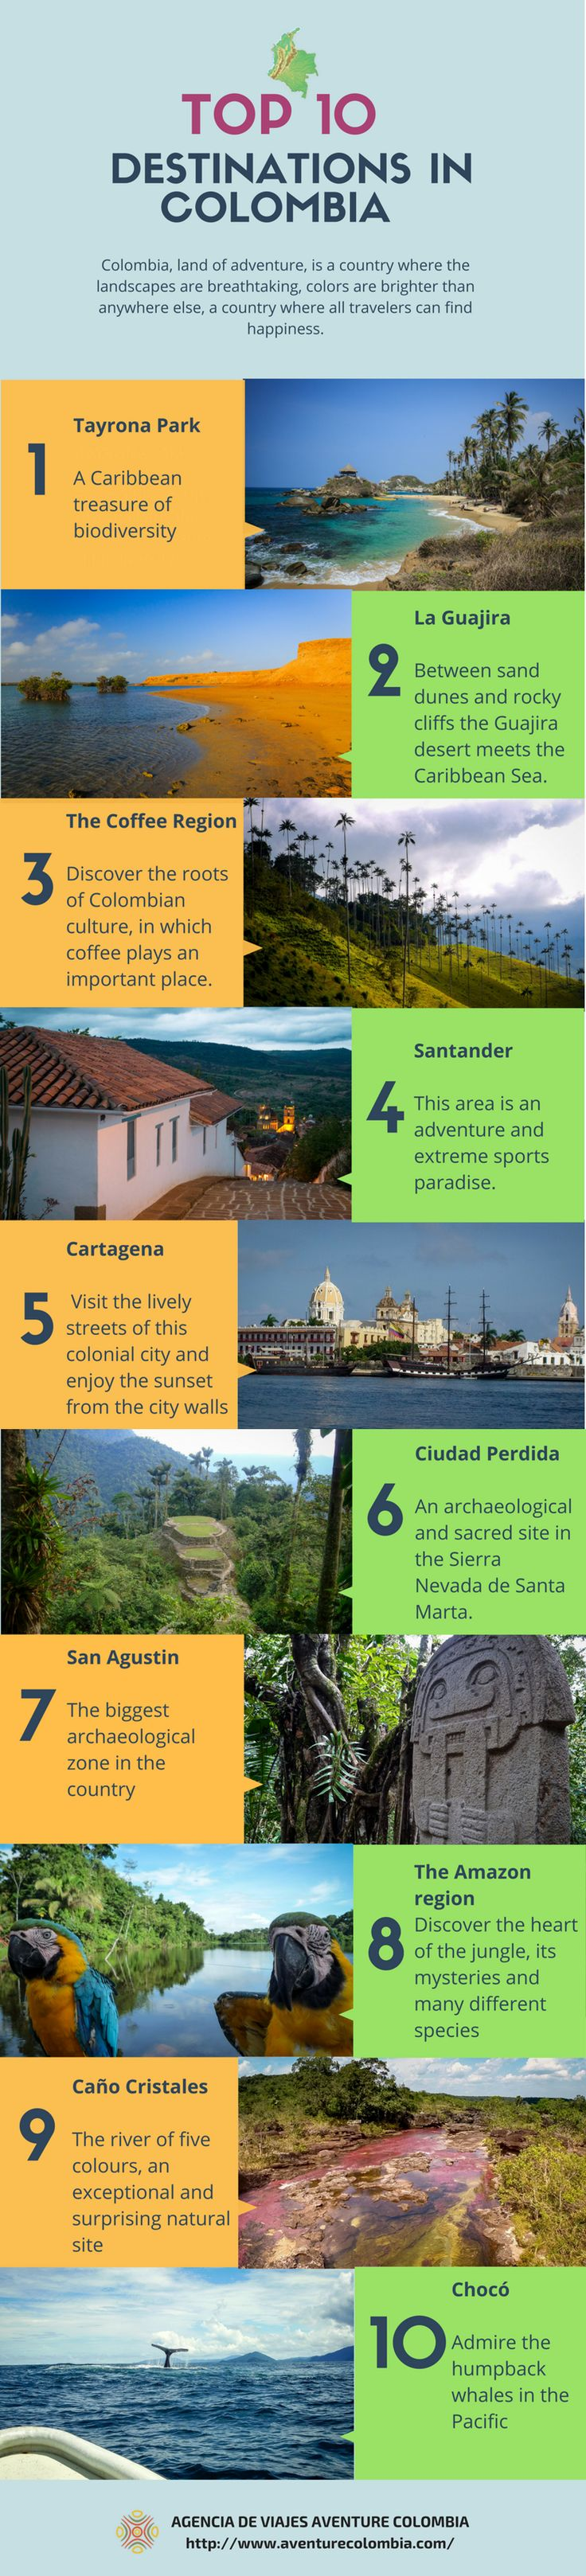 Top 10 destinations in #Colombia. A beautiful country with wonderful landscapes, many traditions and fascinating history. #travel